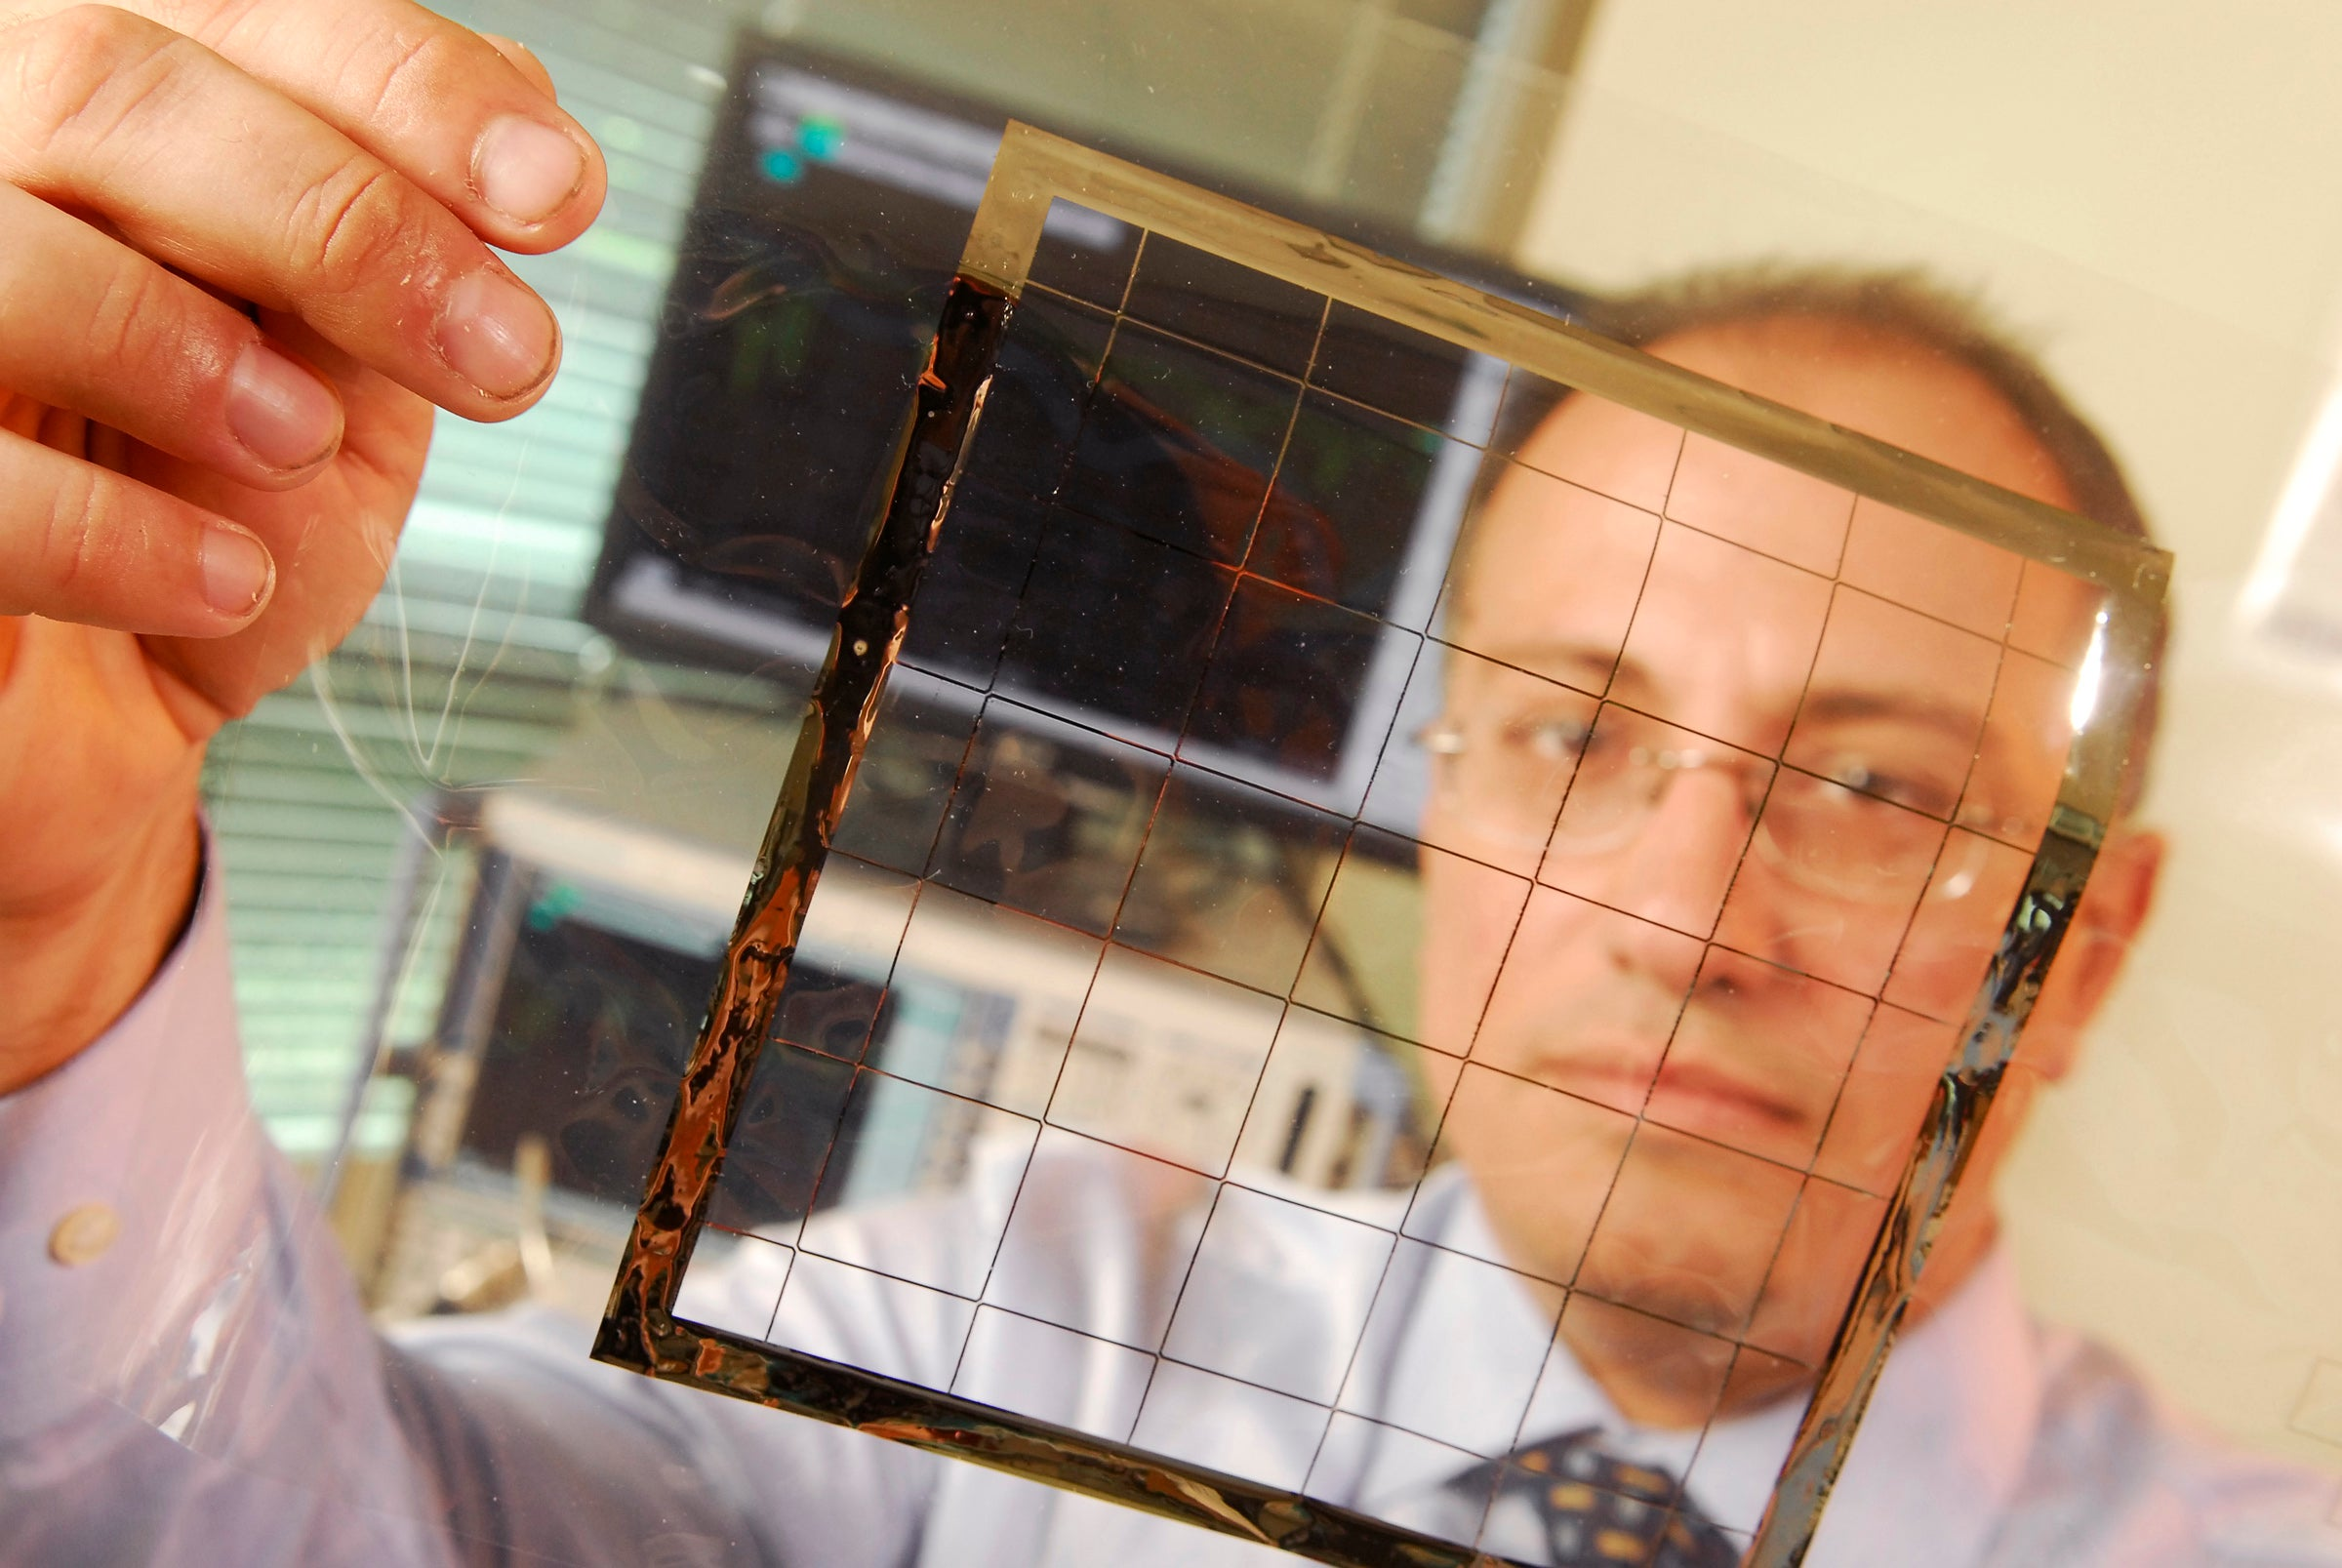 New Printable Antenna Can Harvest Ambient Energy To Power Small Electronics